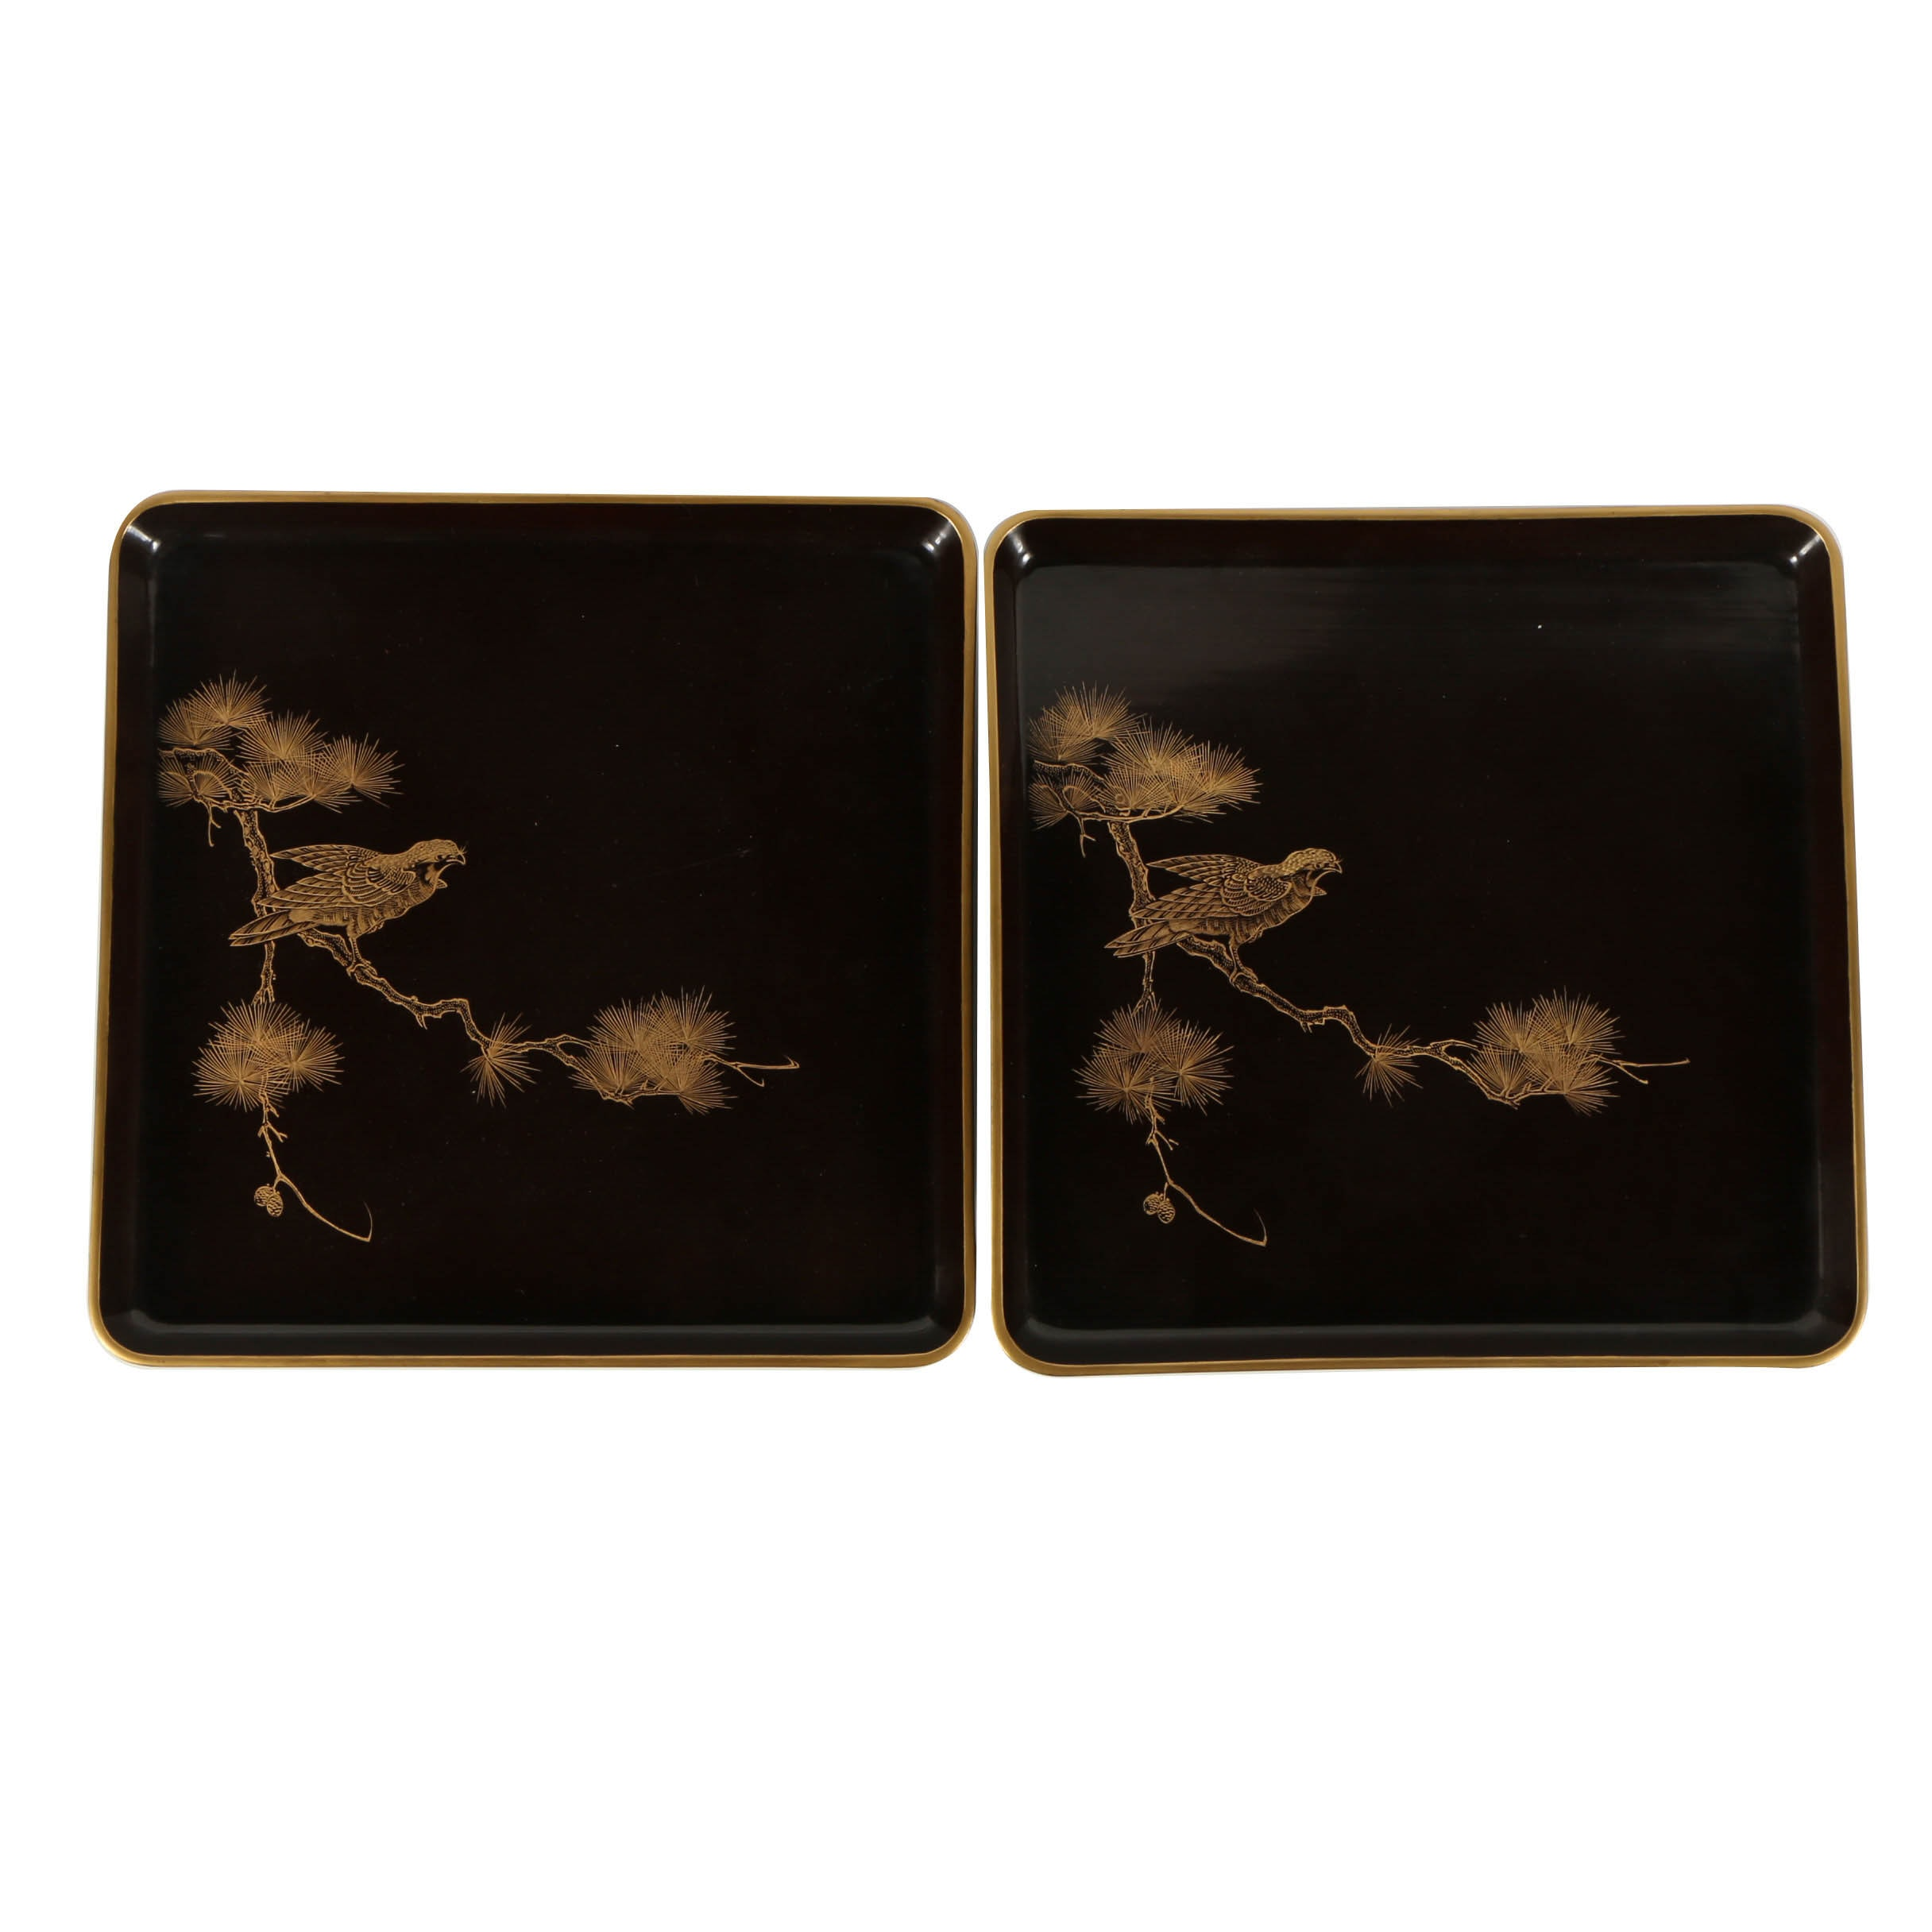 Japanese Lacquered Wood Trays with a Falcon Motif